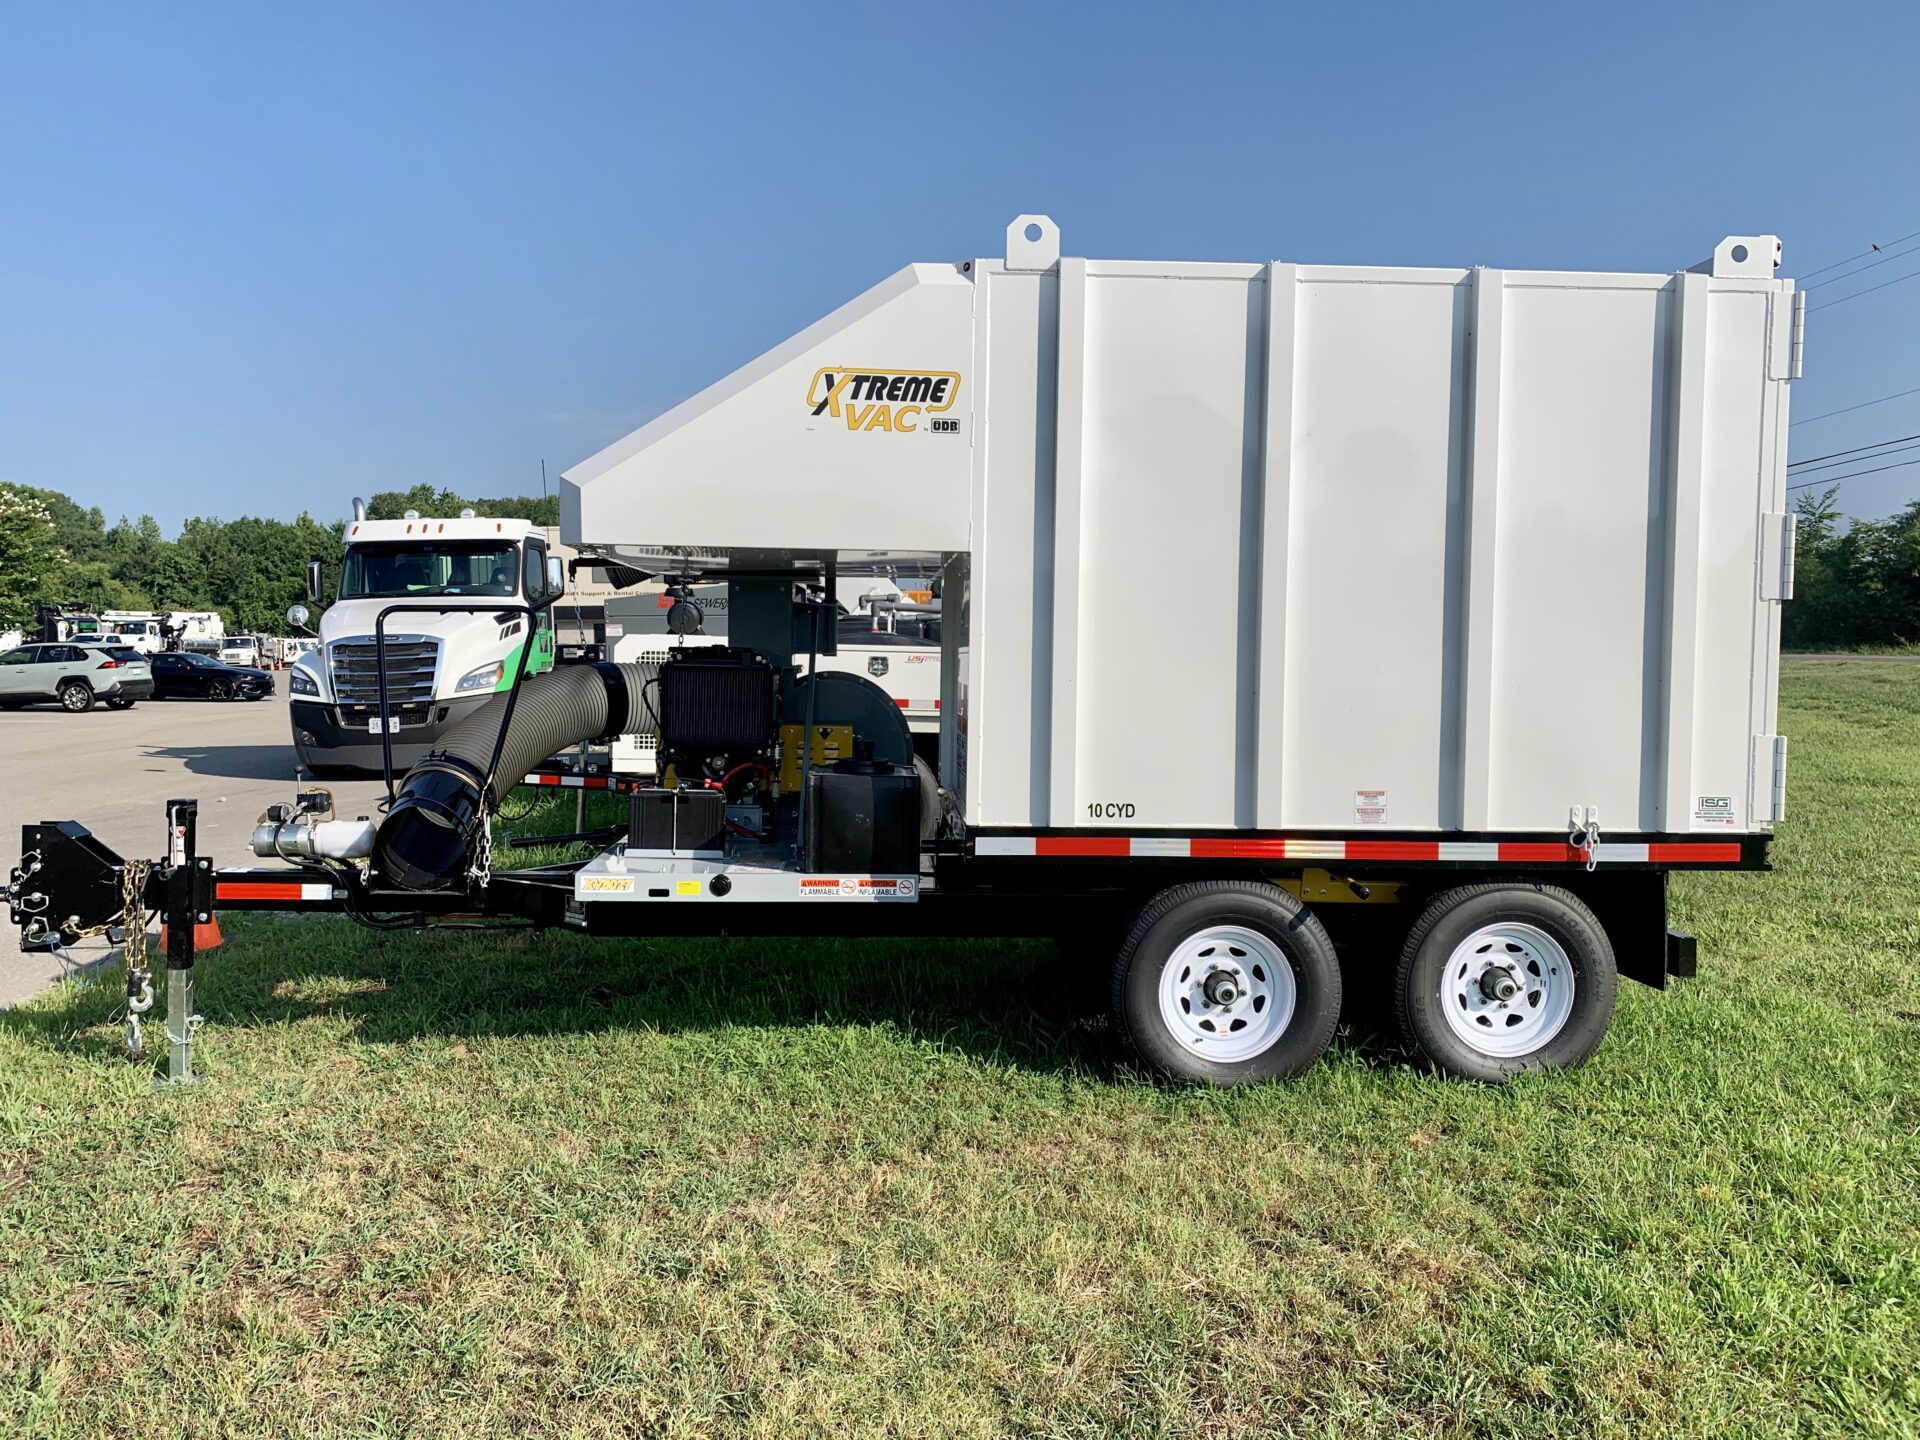 XtremeVac Debris Trailer In Stock and For Sale